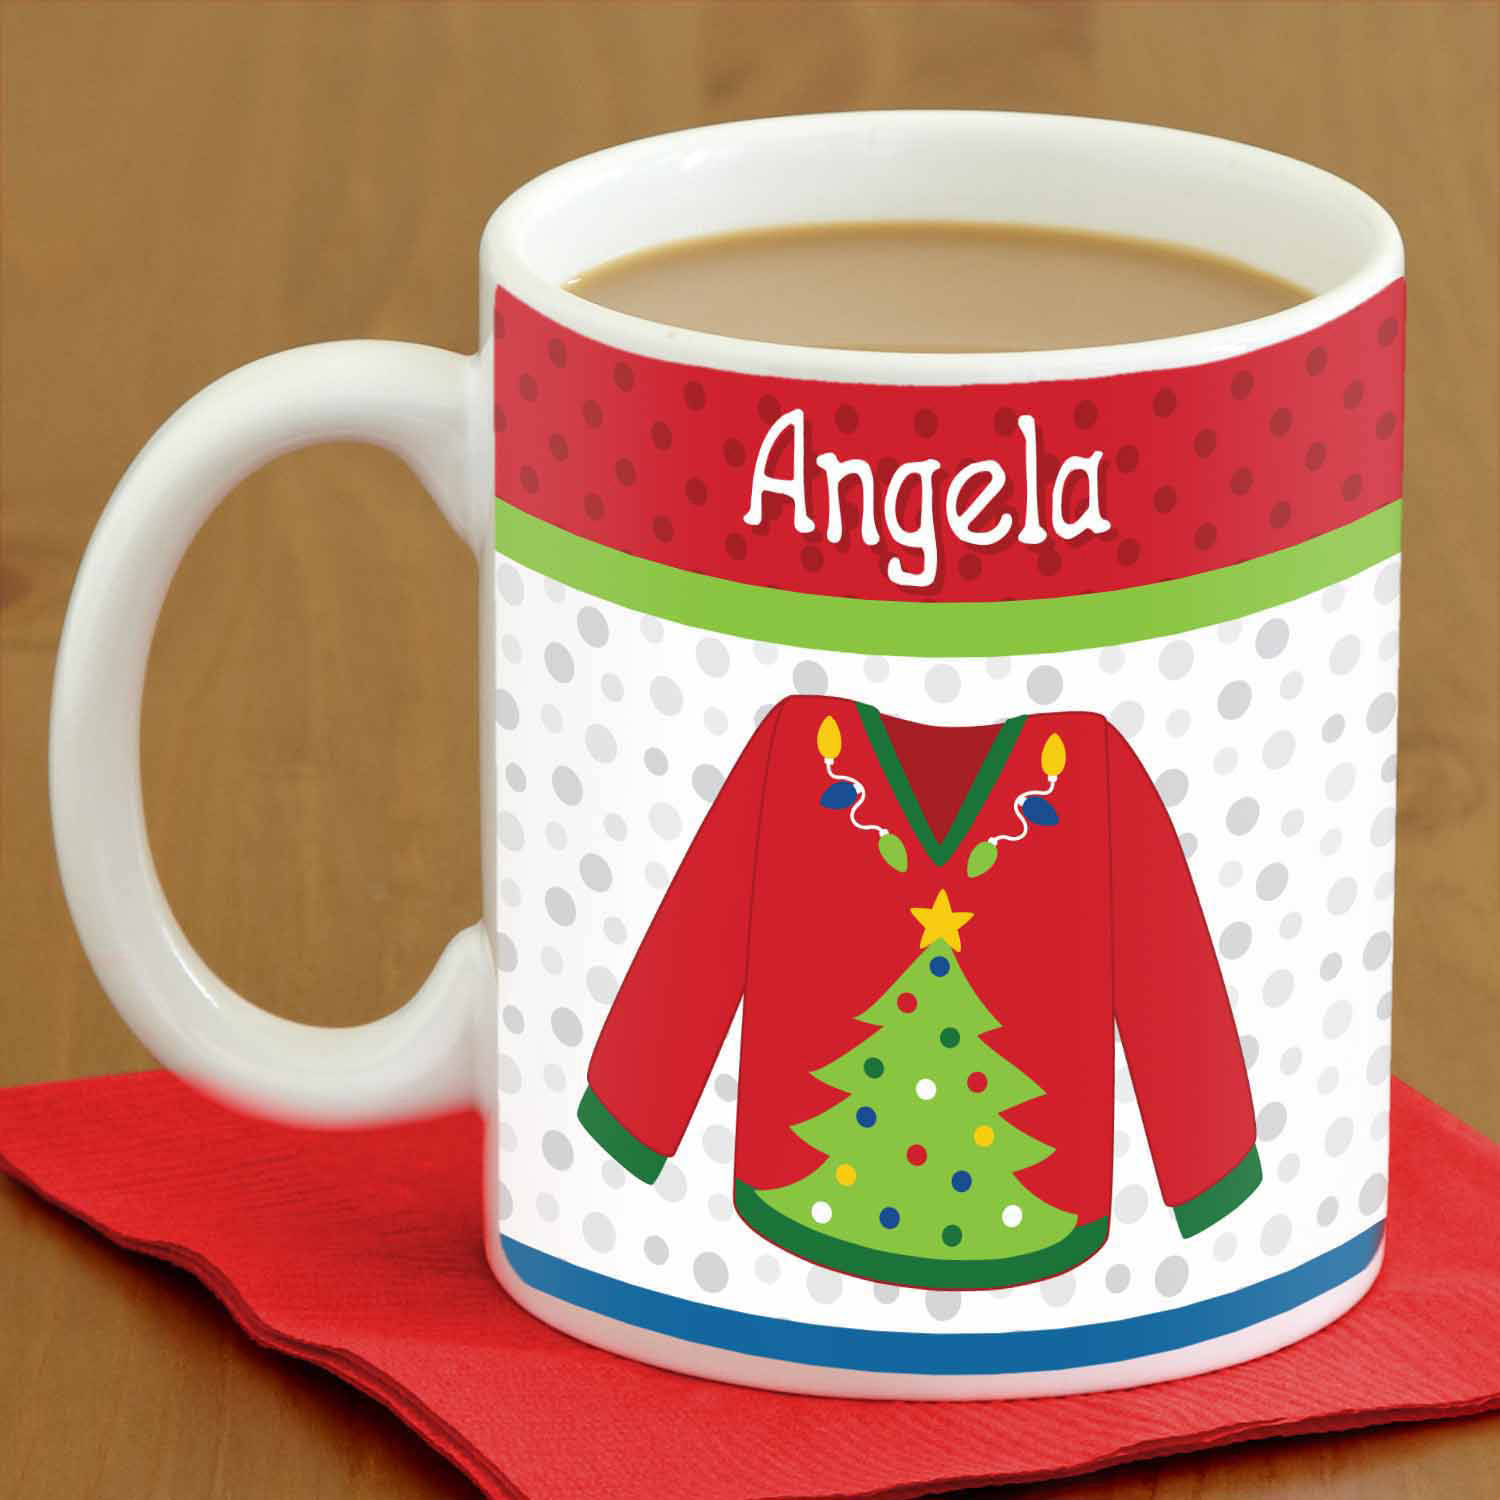 Personalized Ugly Christmas Sweater Coffee Mug, 15 oz - Christmas Tree, Availble in 6 Designs